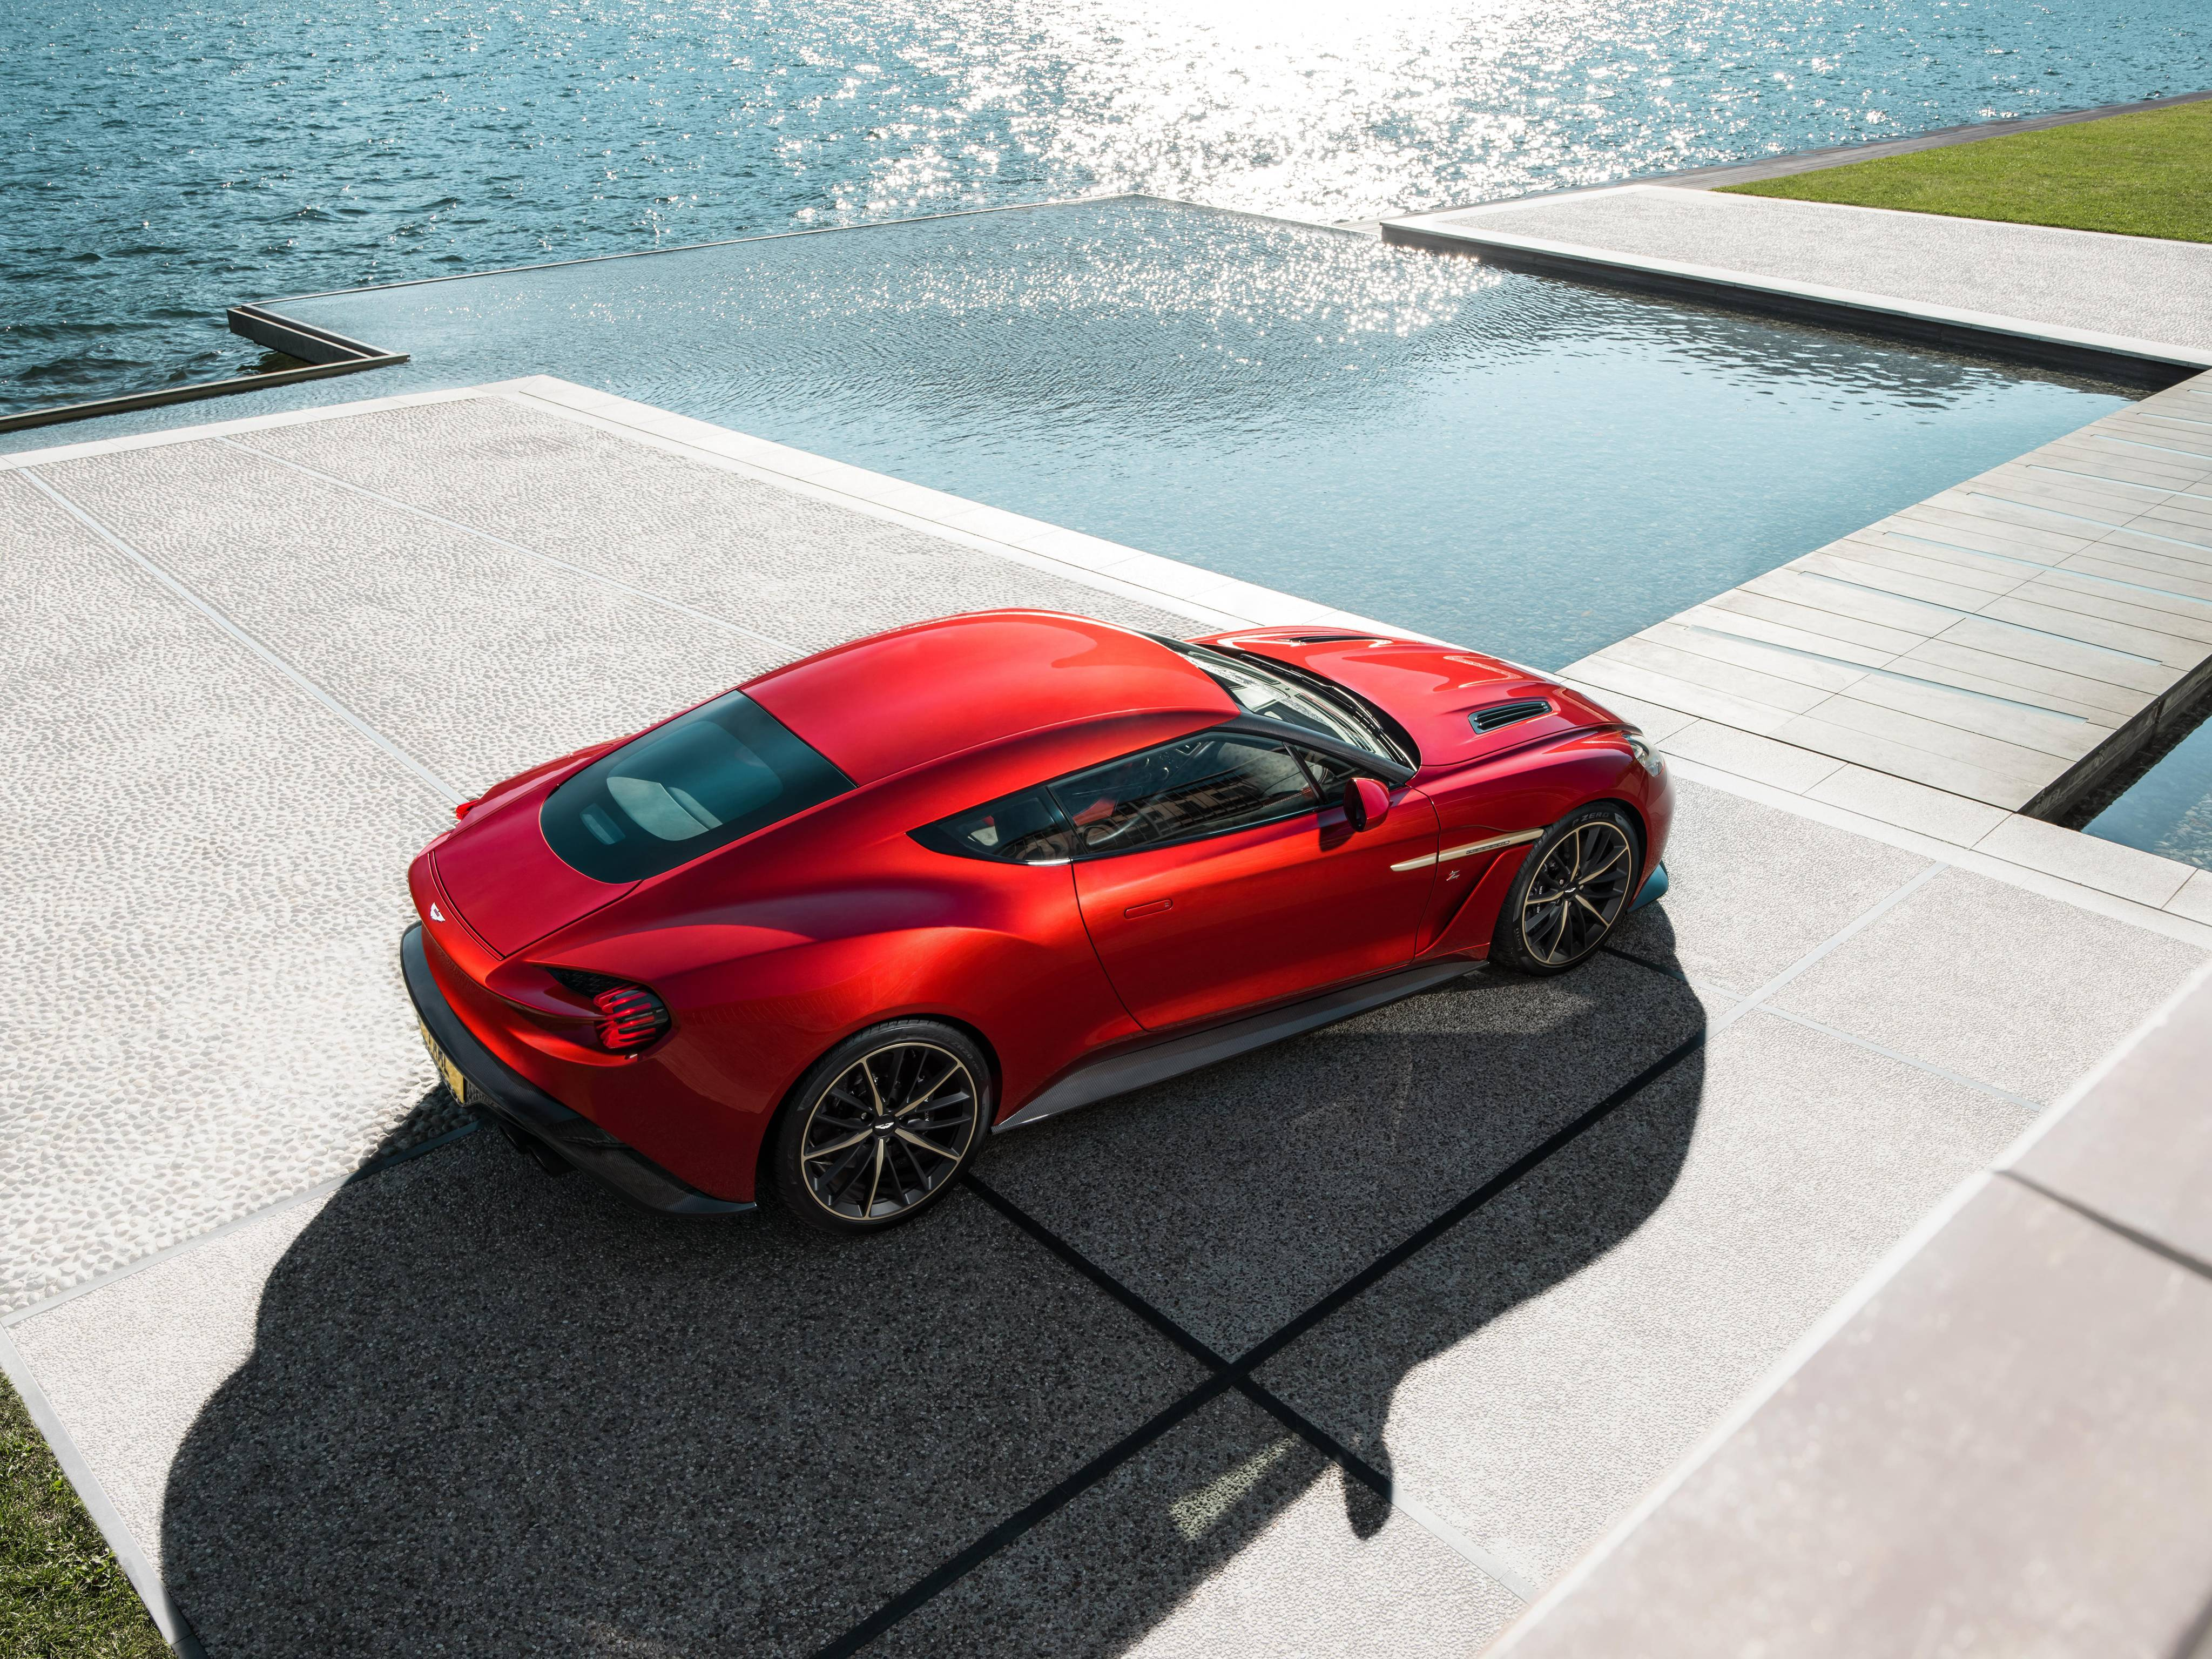 aston martin vanquish sports car hd cars 4k wallpapers images backgrounds photos and pictures. Black Bedroom Furniture Sets. Home Design Ideas